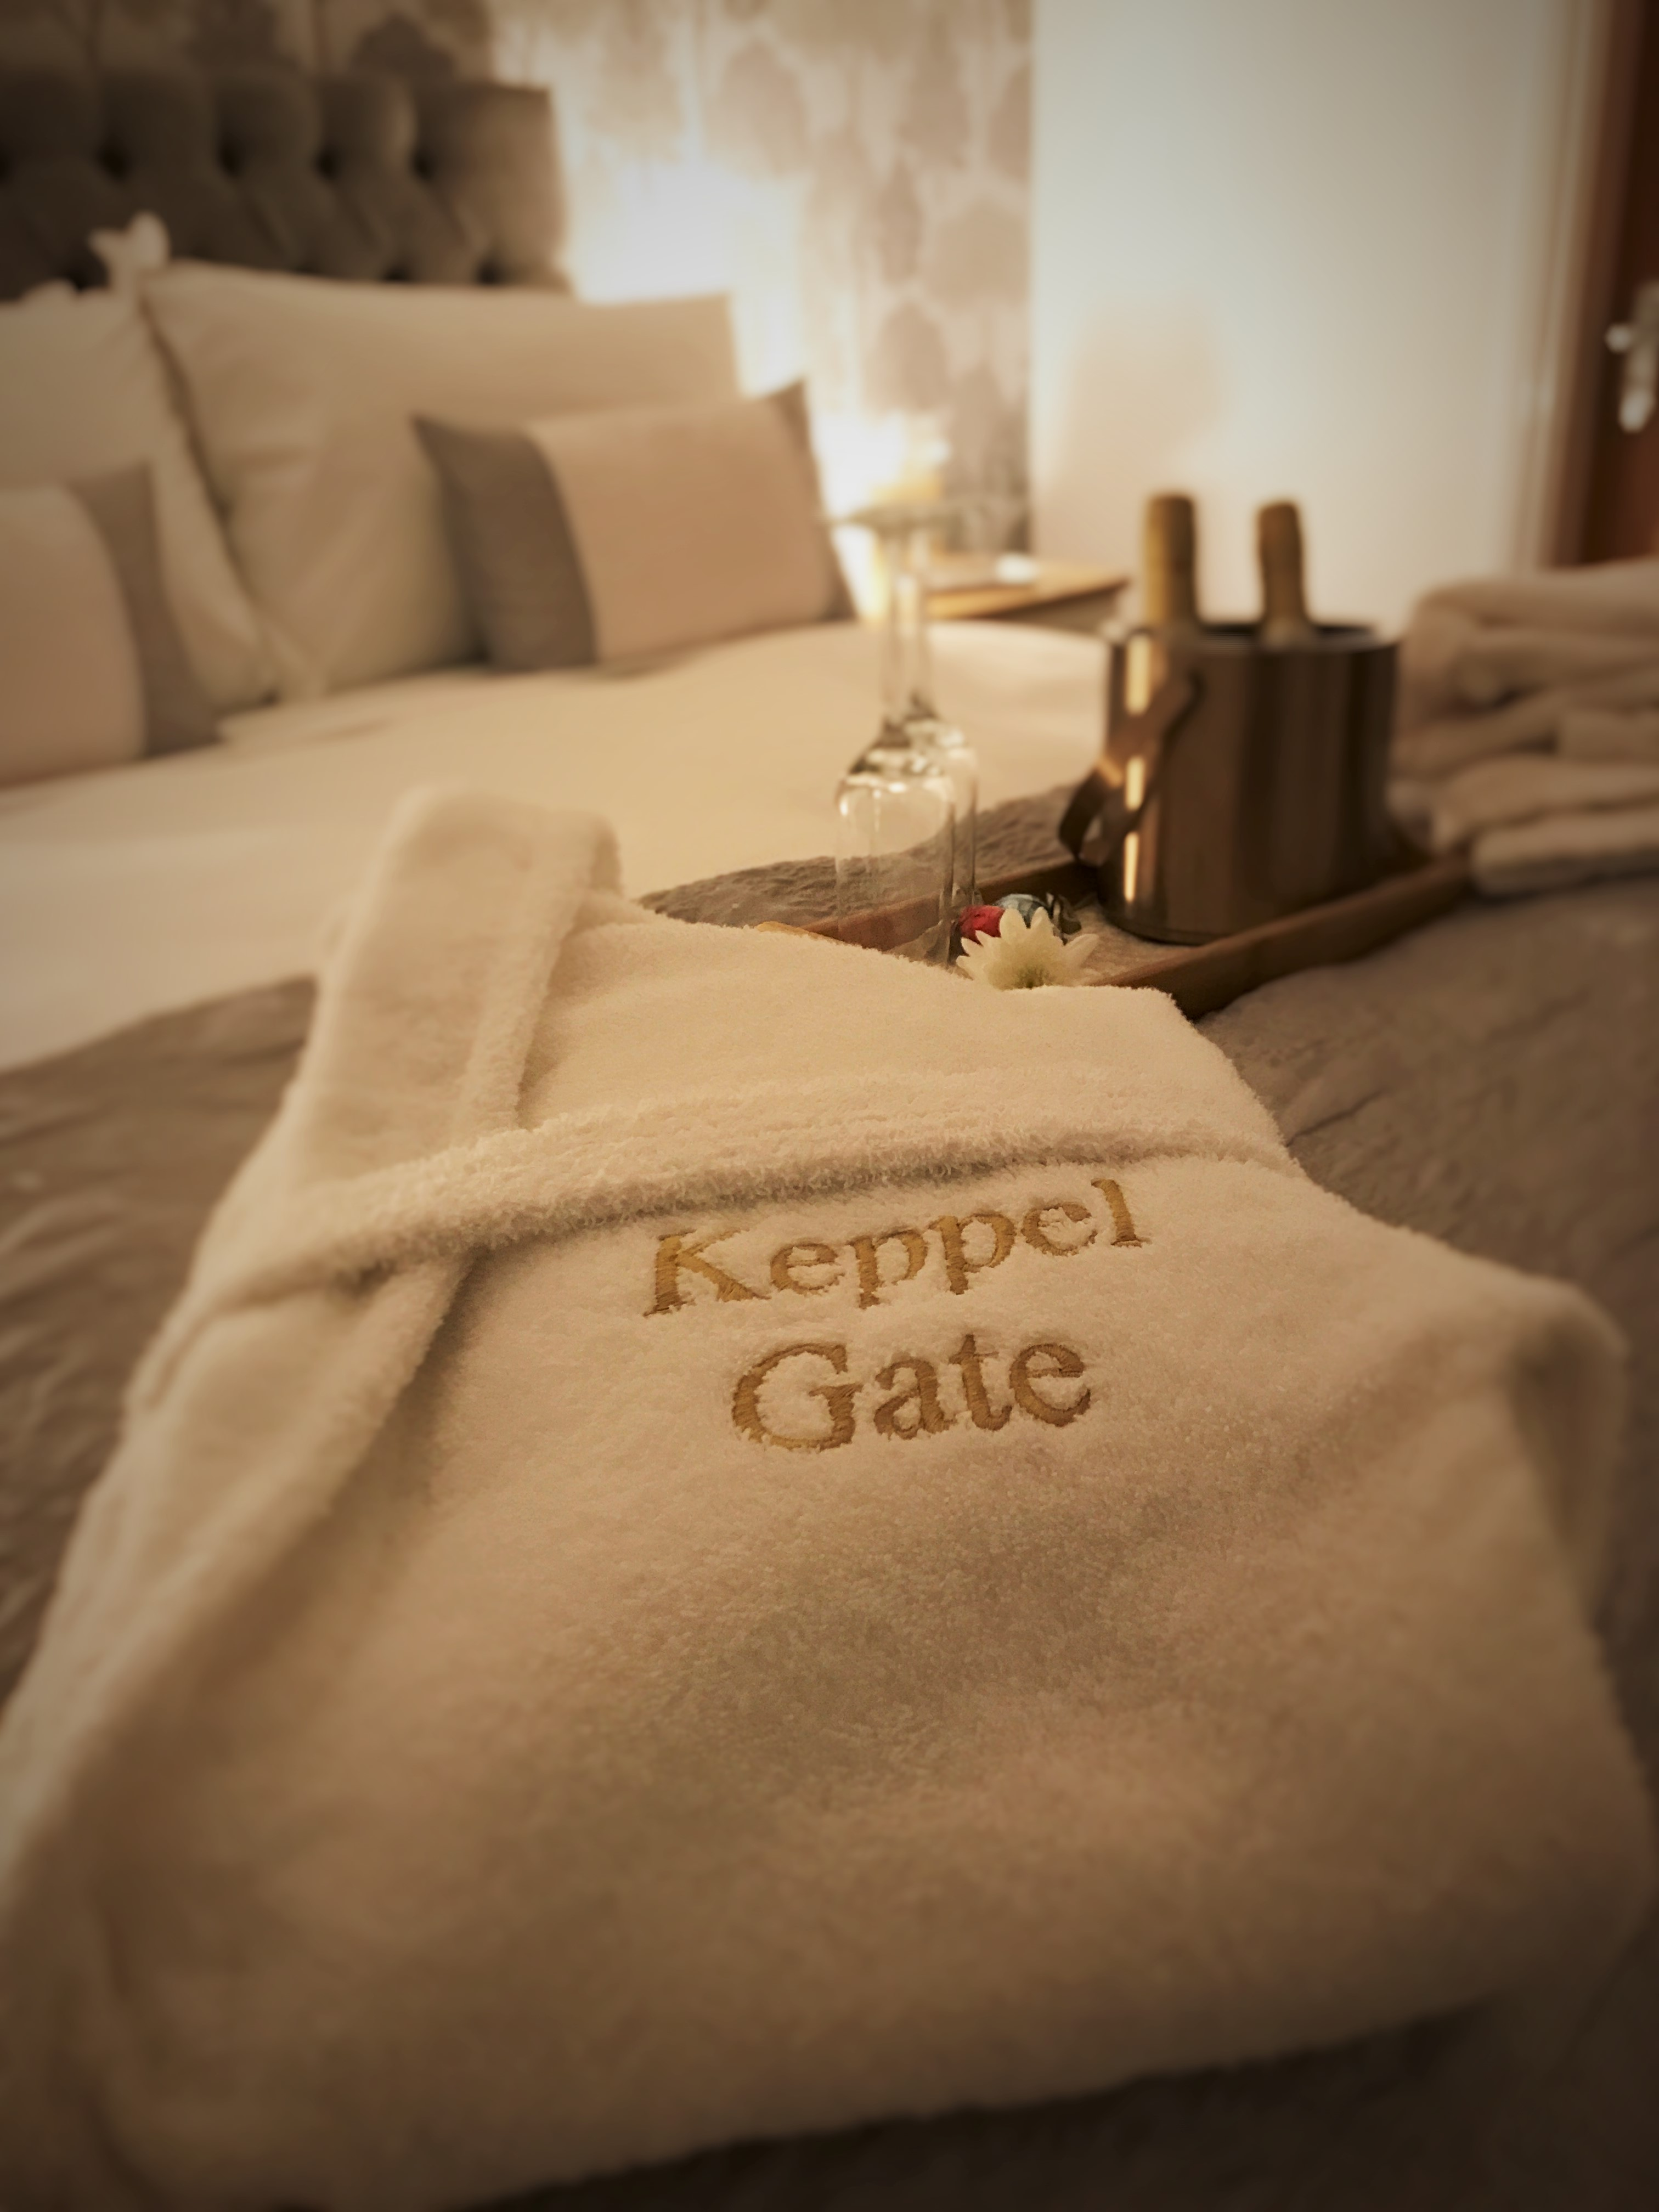 Keppel Gate Bed and Breakfast